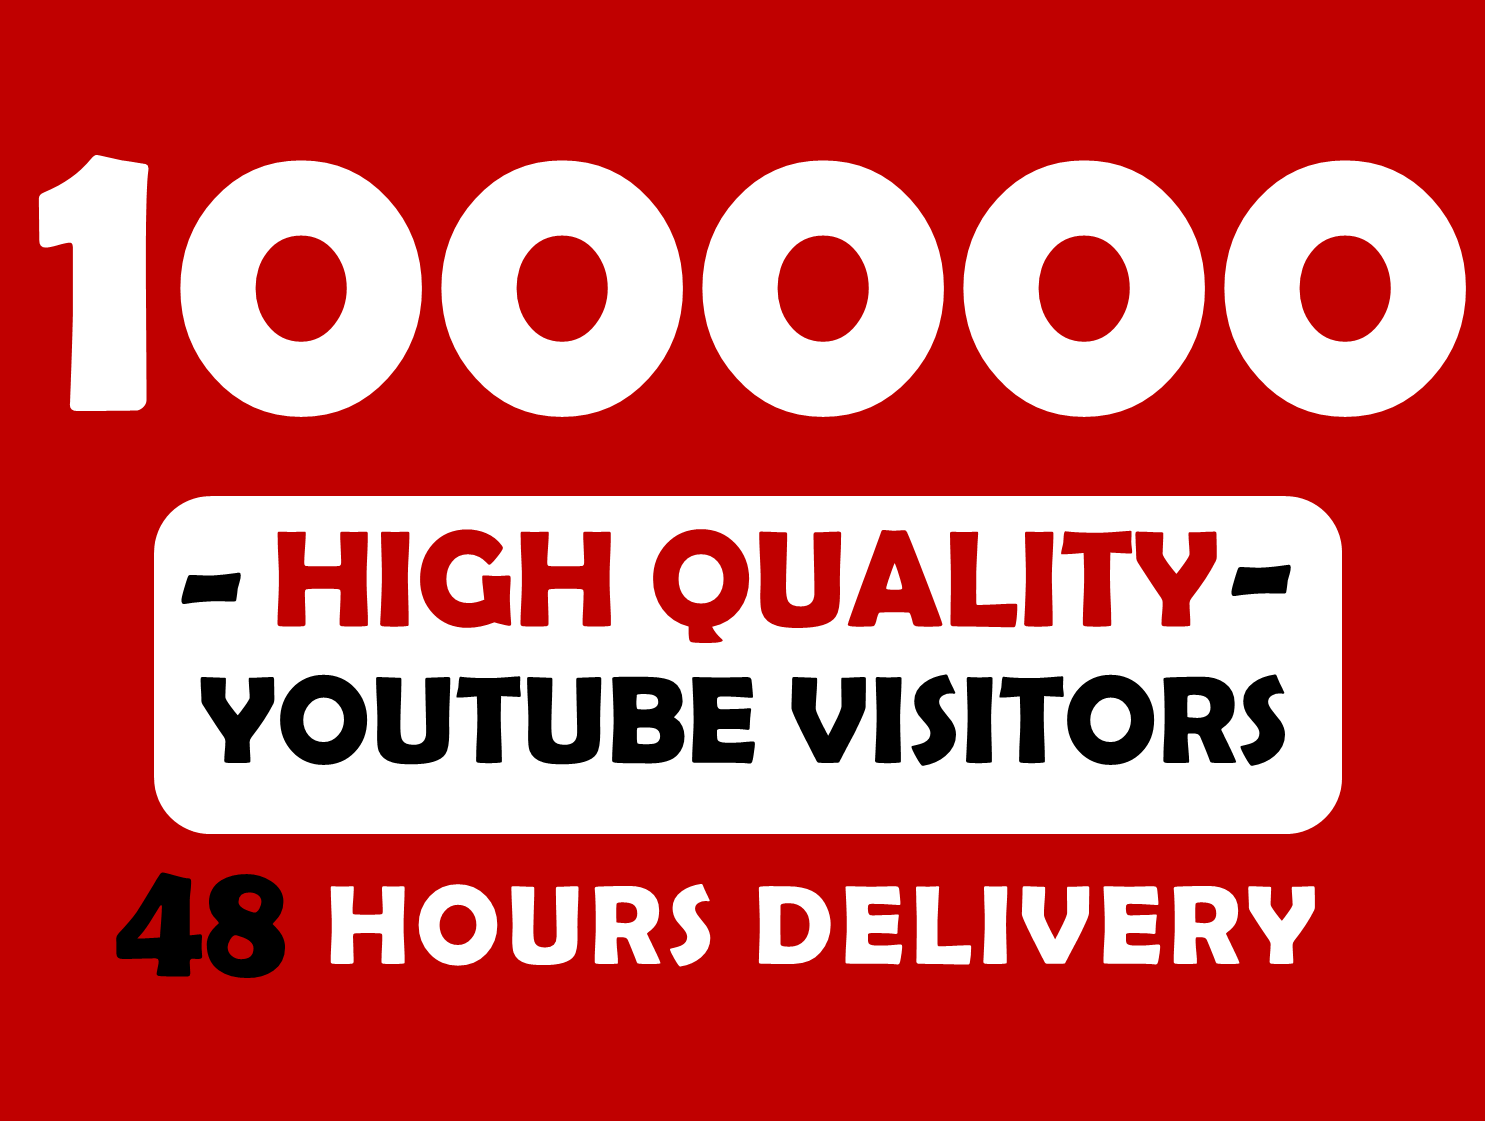 10,000 To 12,000 High Quality YouTube Views  Delivery Time